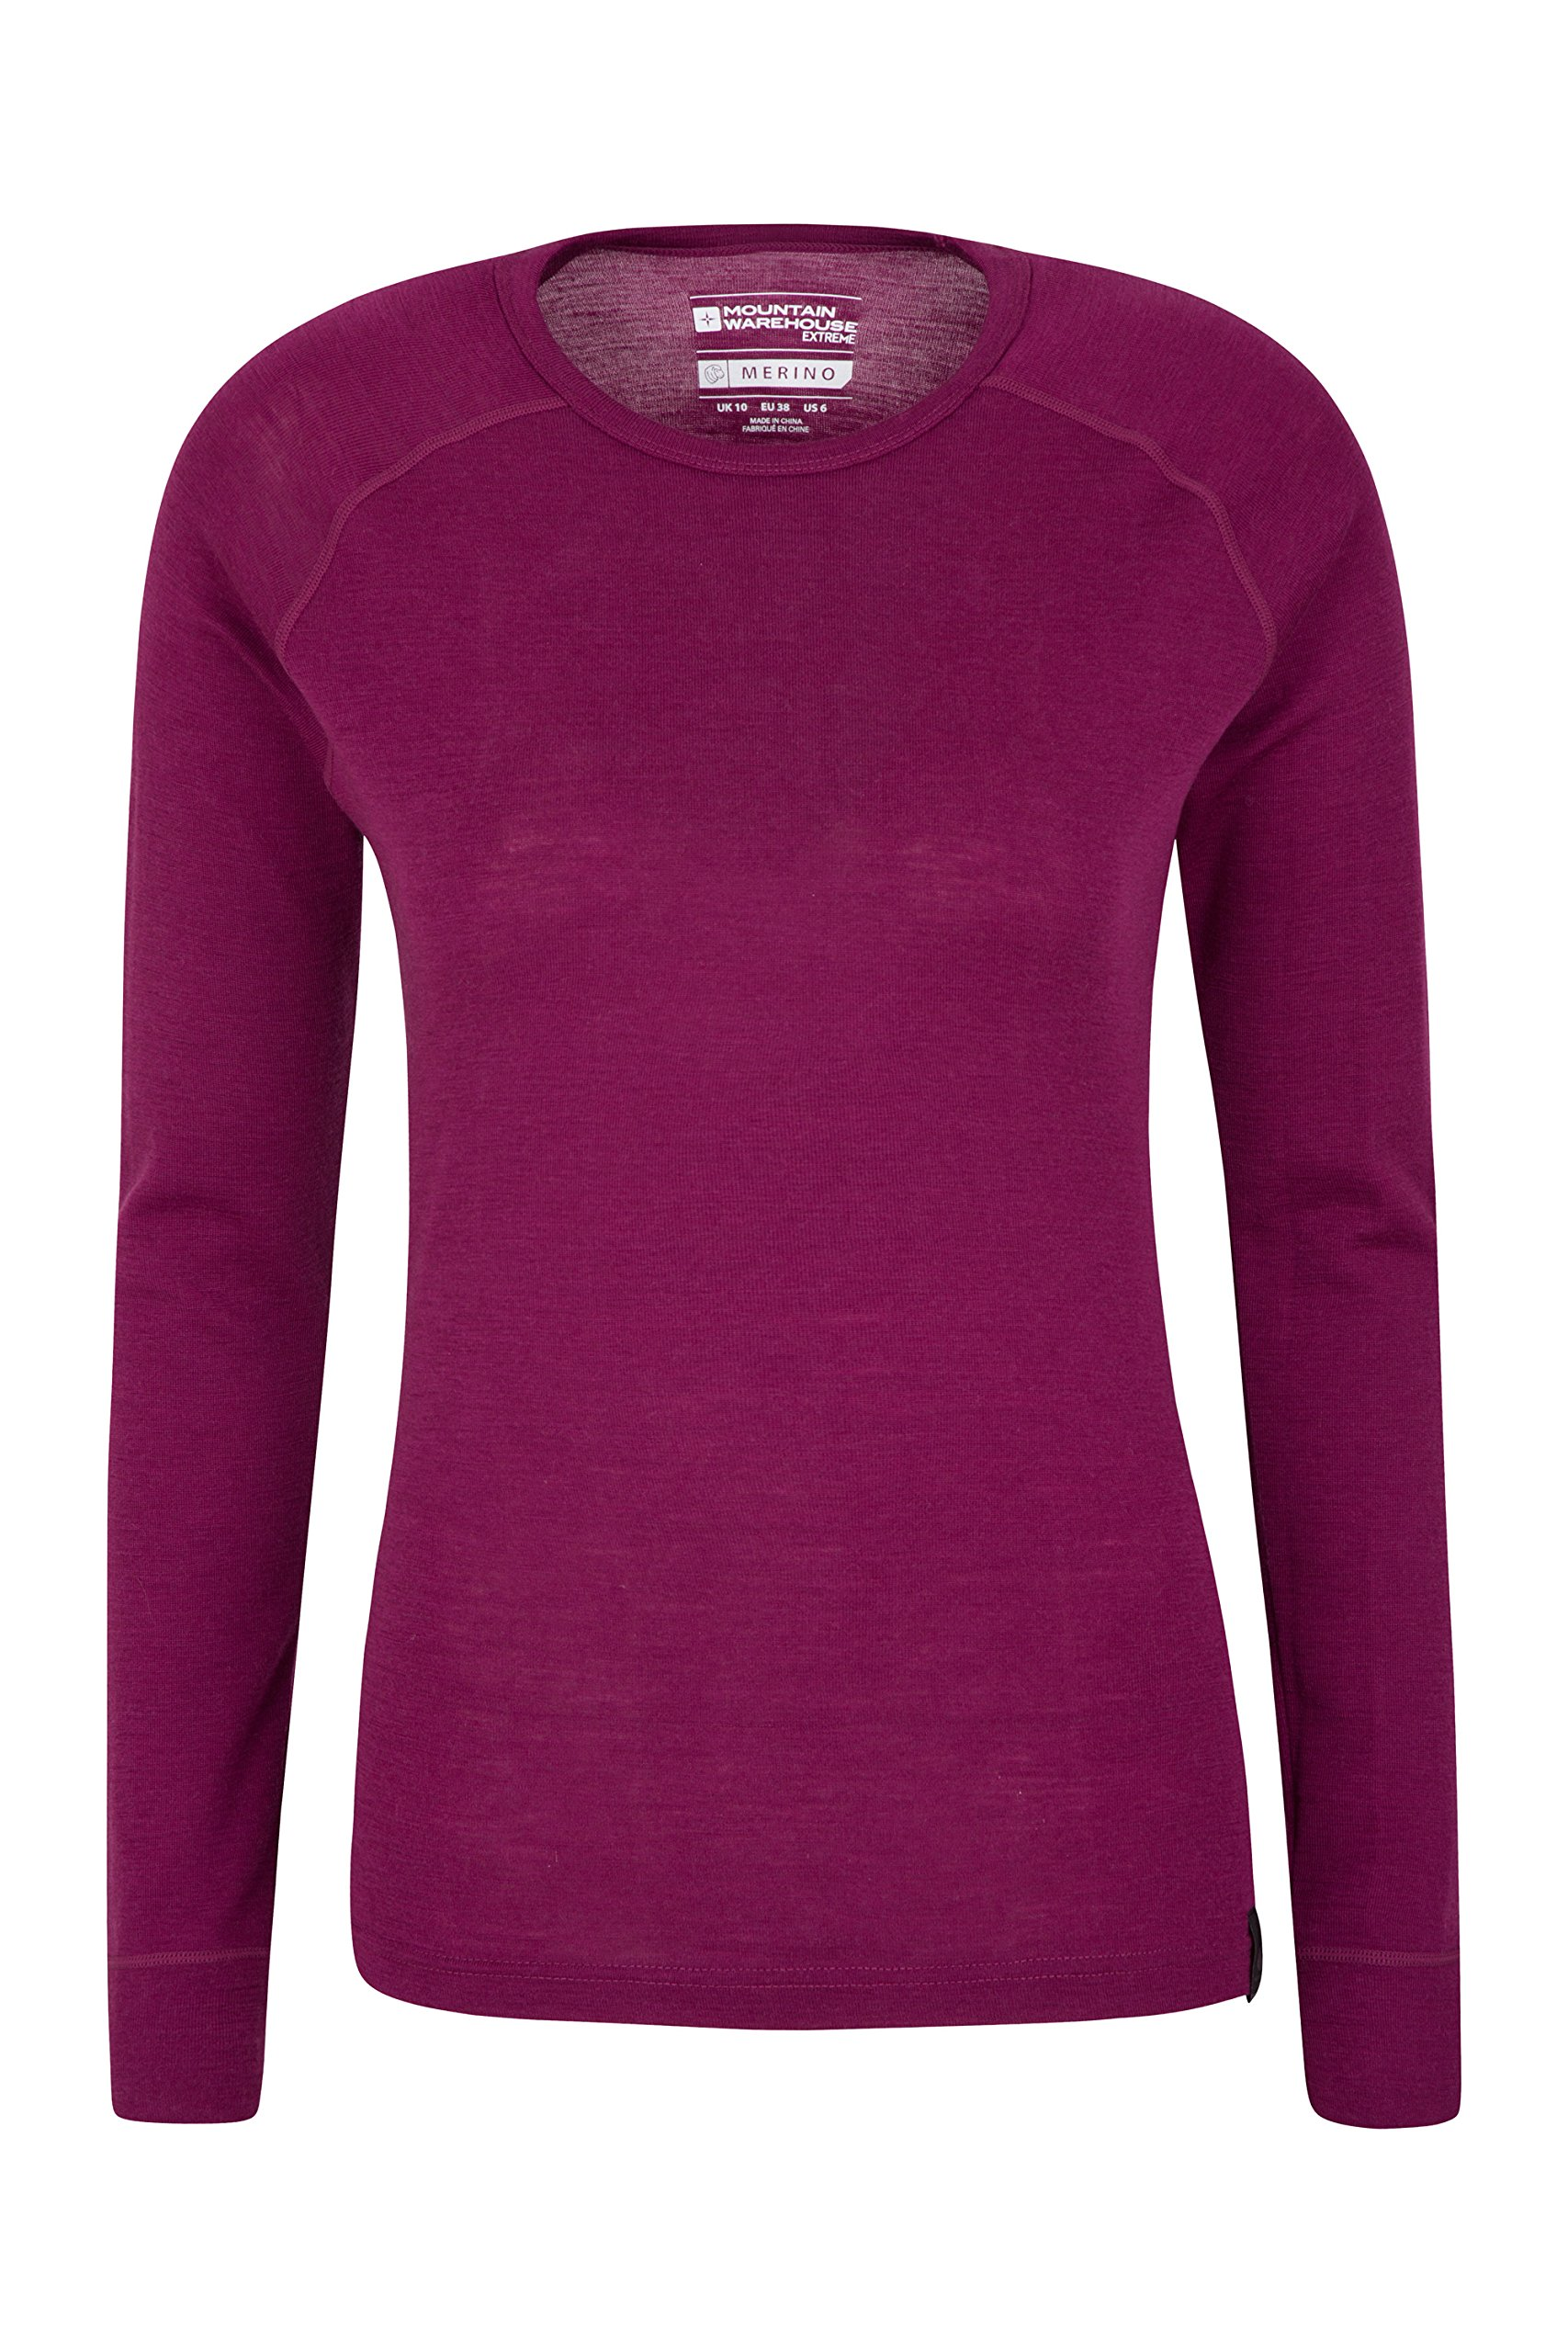 Mountain Warehouse Merino Womens Thermal Baselayer Top - Lightweight Tee Ladies Shirt, Breathable T Shirt, Antibacterial 1